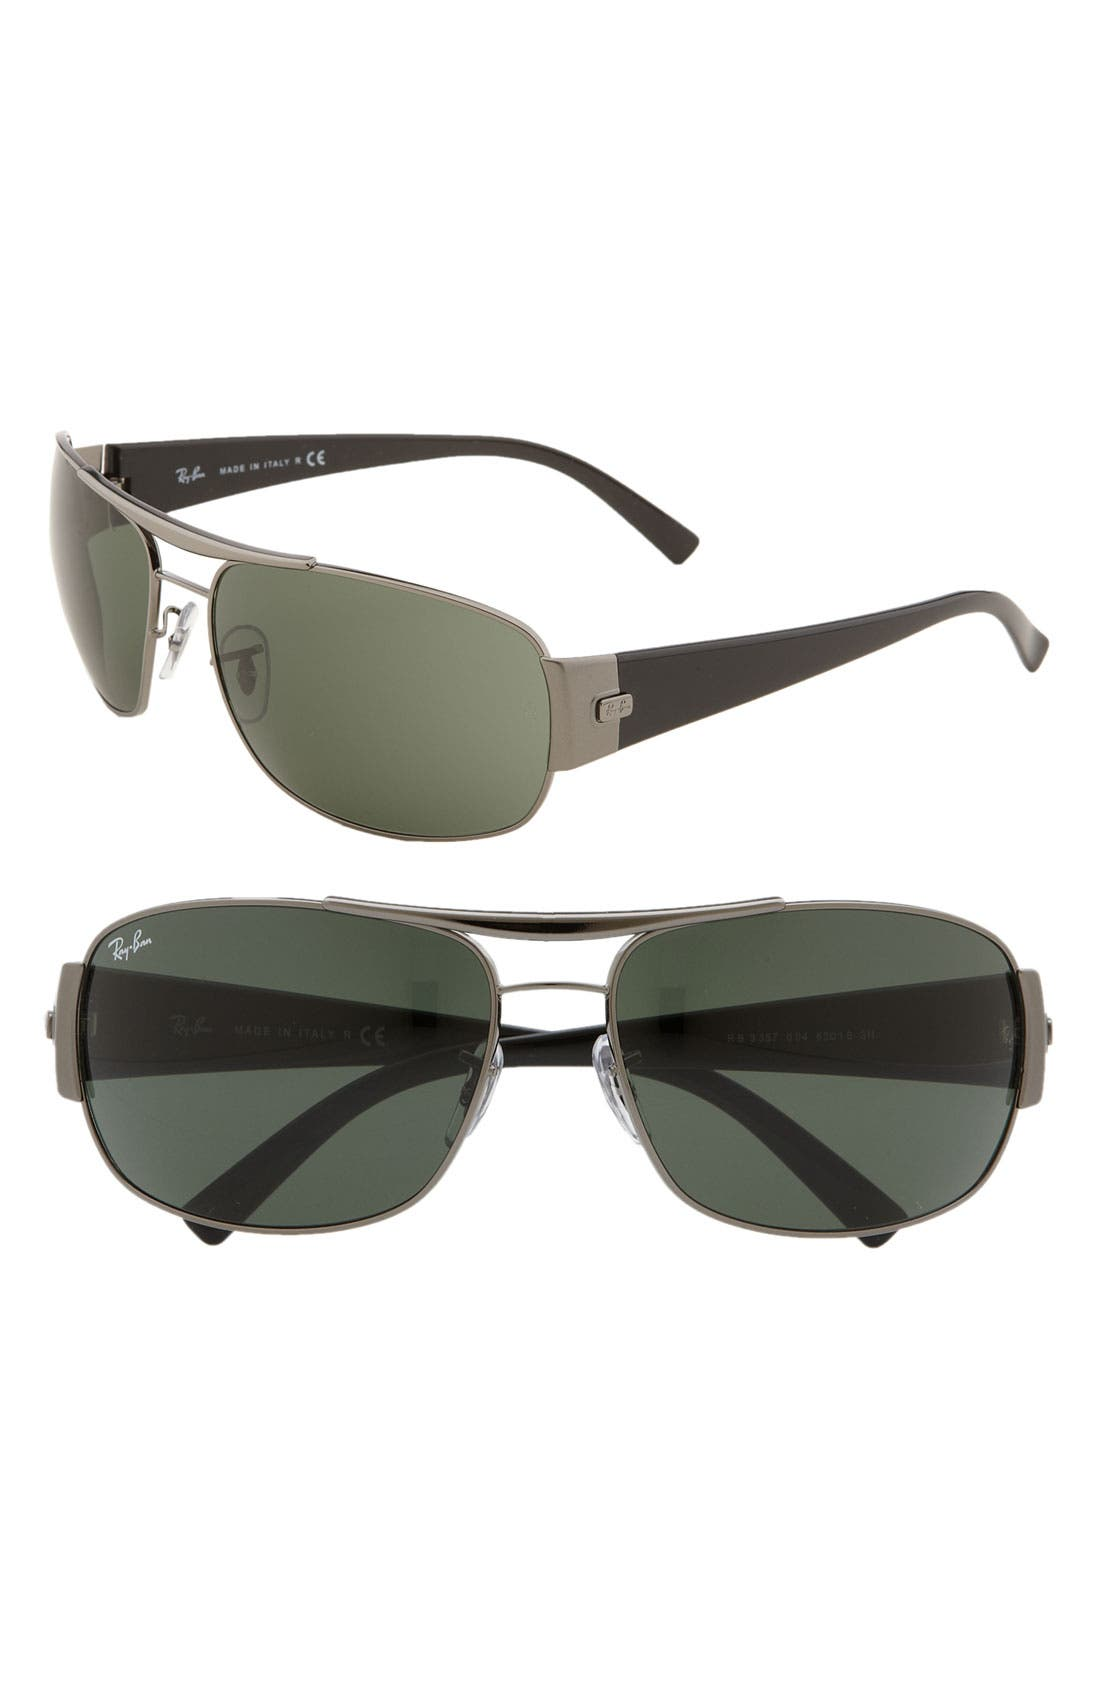 Main Image - Ray-Ban Square Wrap 63mm Aviator Sunglasses